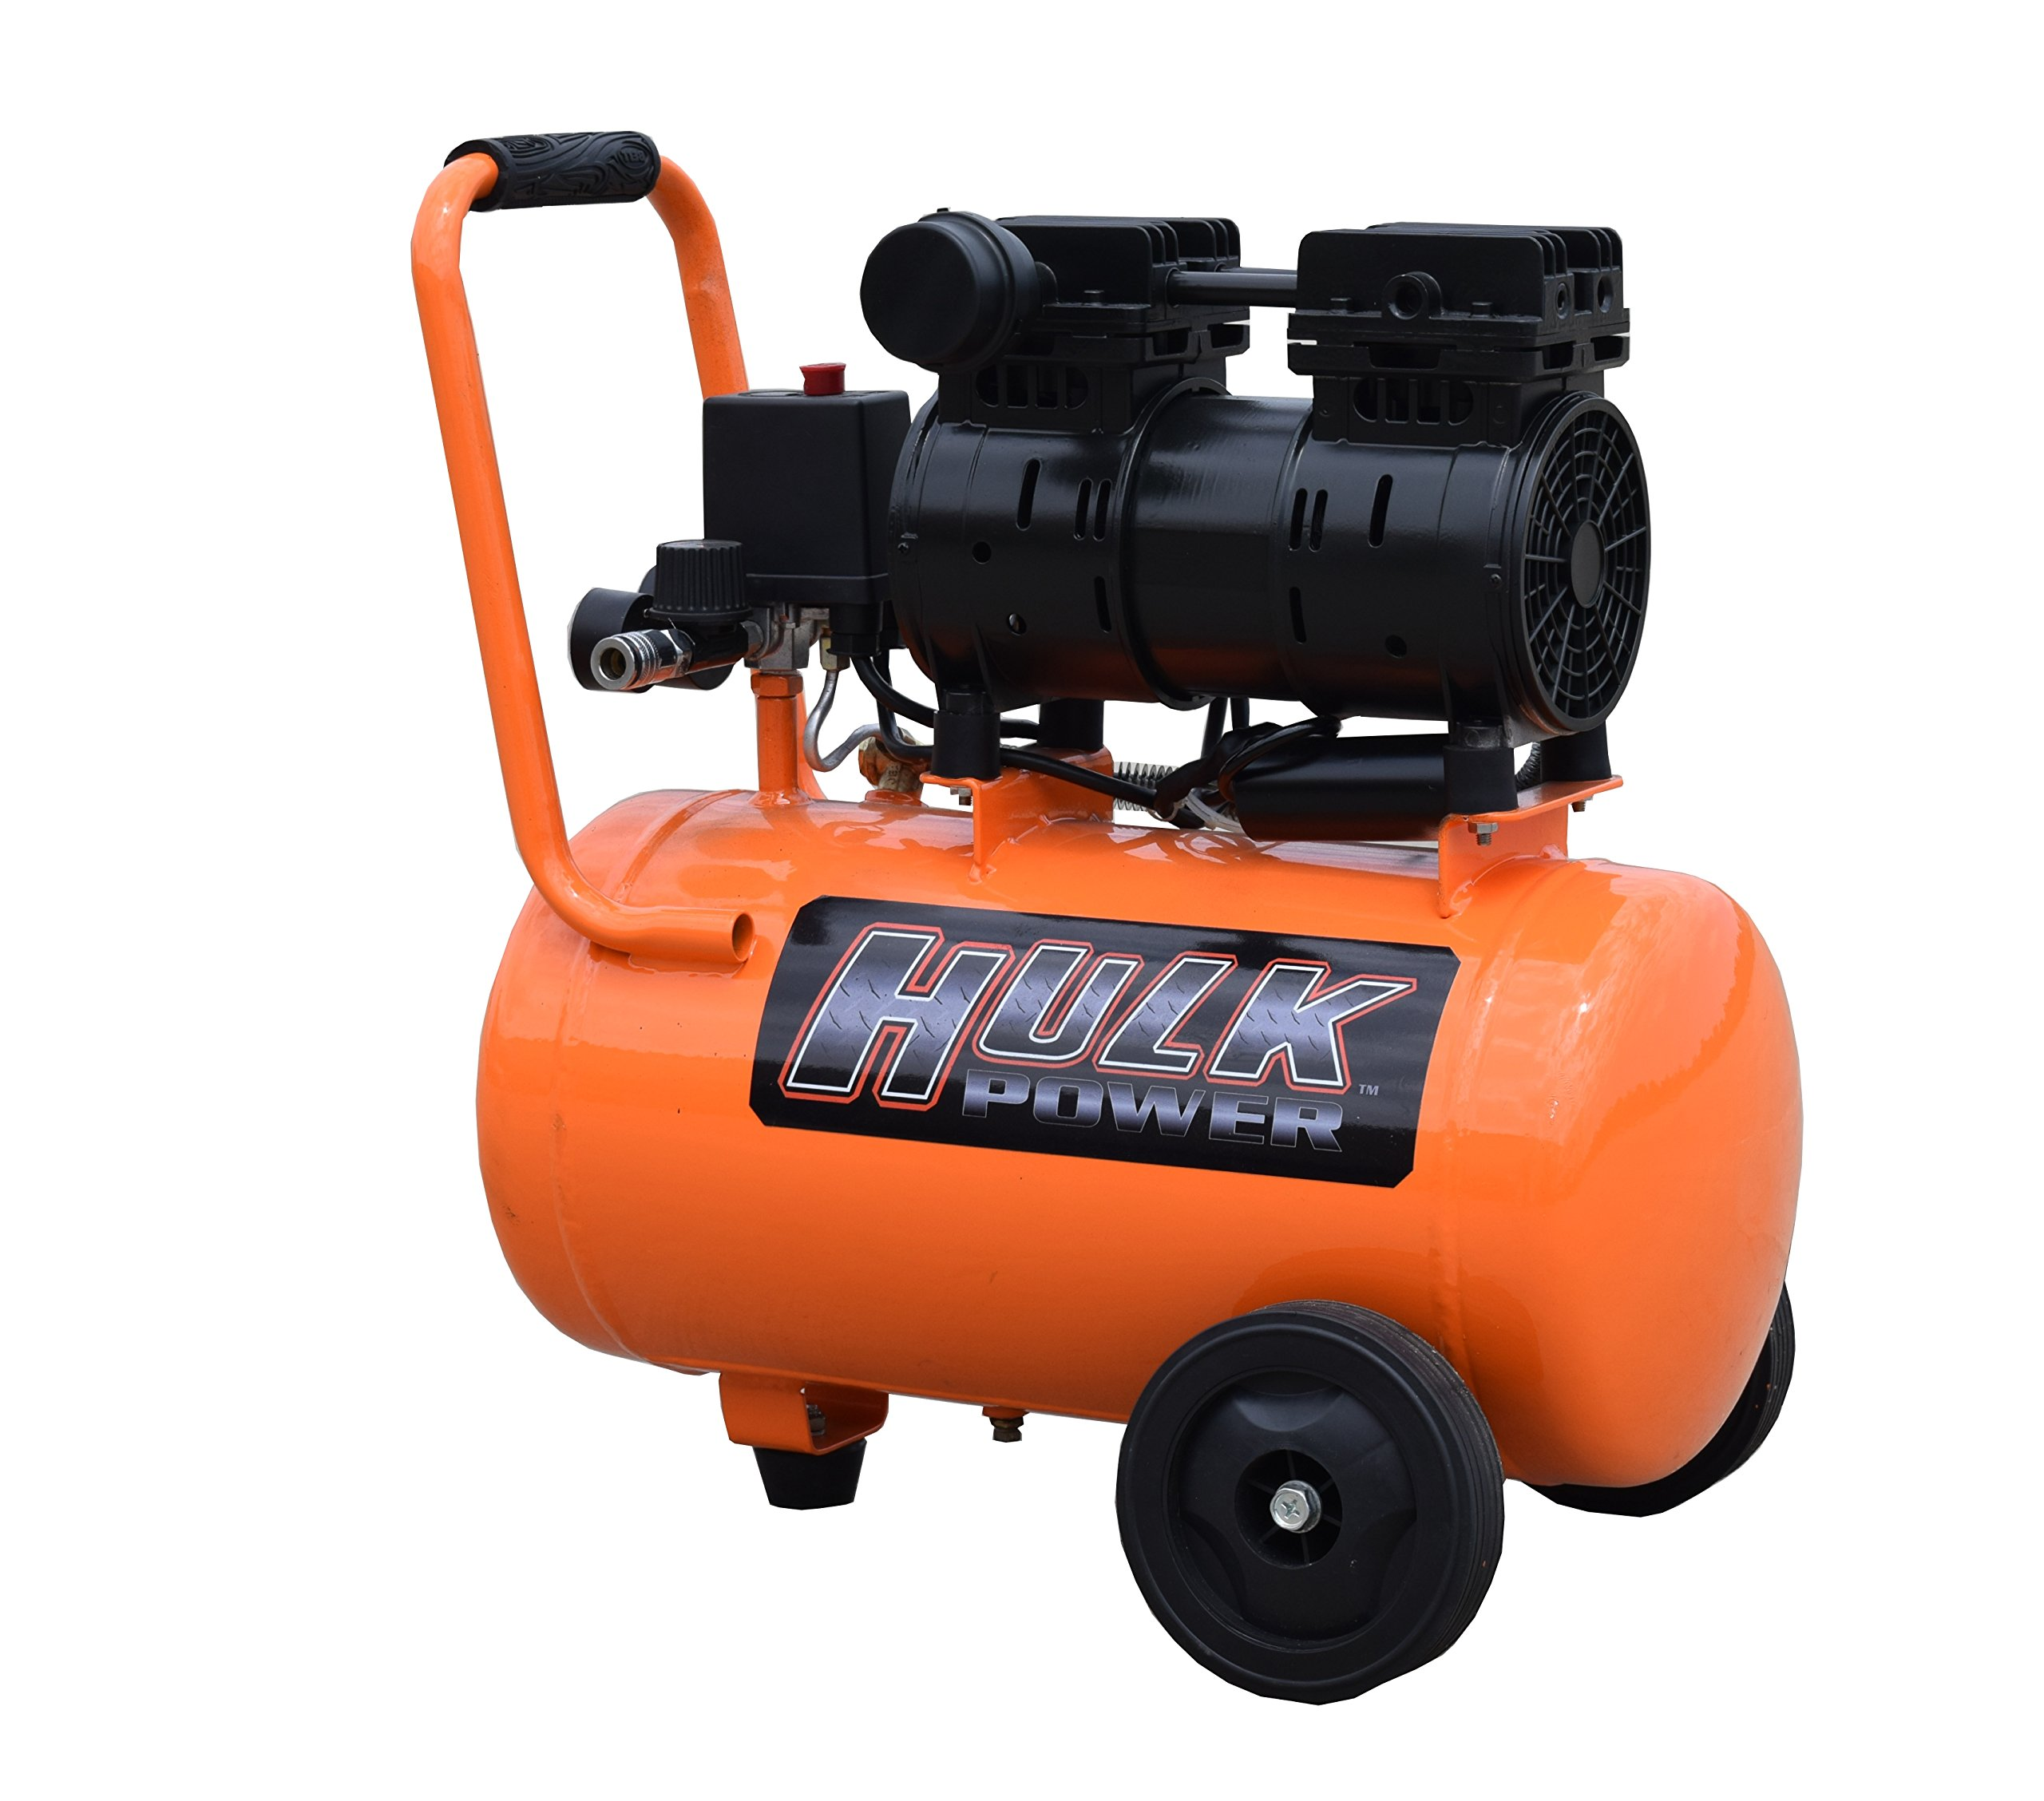 1 HP Quiet Portable Air Compressor, 120 PSI, 6 Gallon, HULK Silent Series, Model HP01P006SS by EMAX Compressor by EMAX Compressor